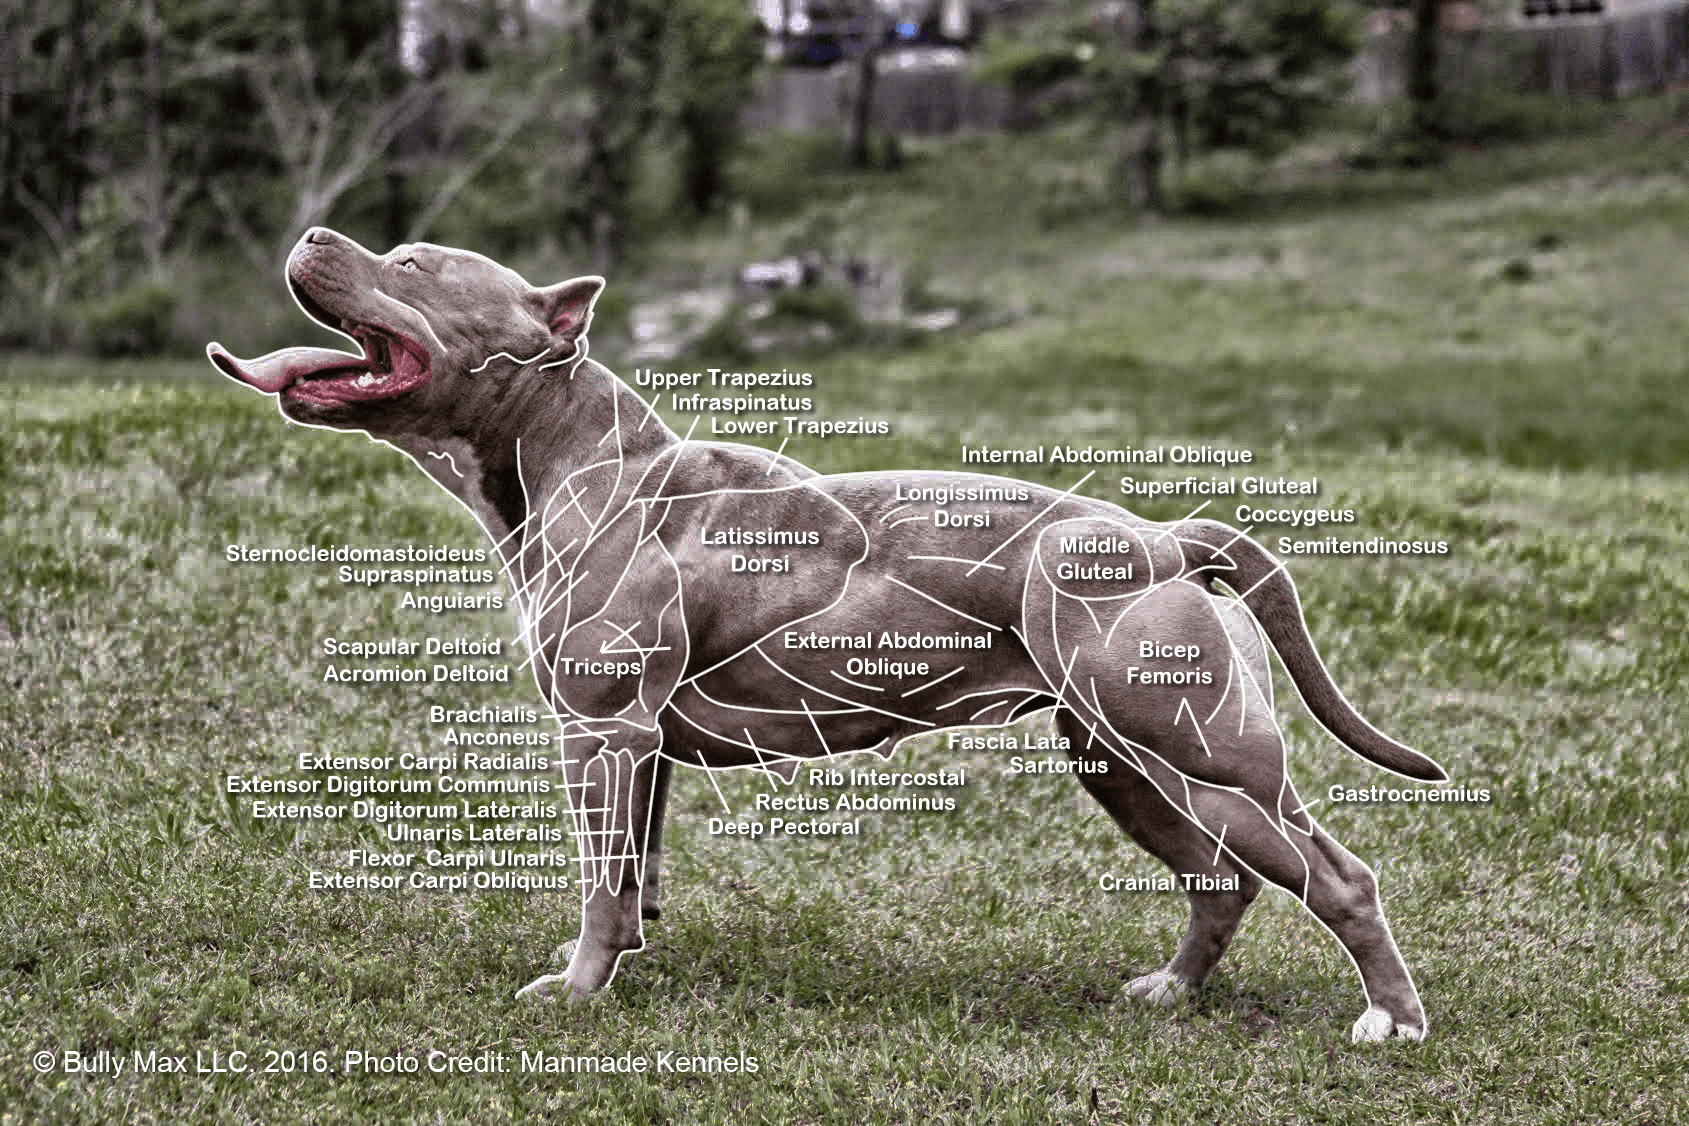 Anatomy of dog